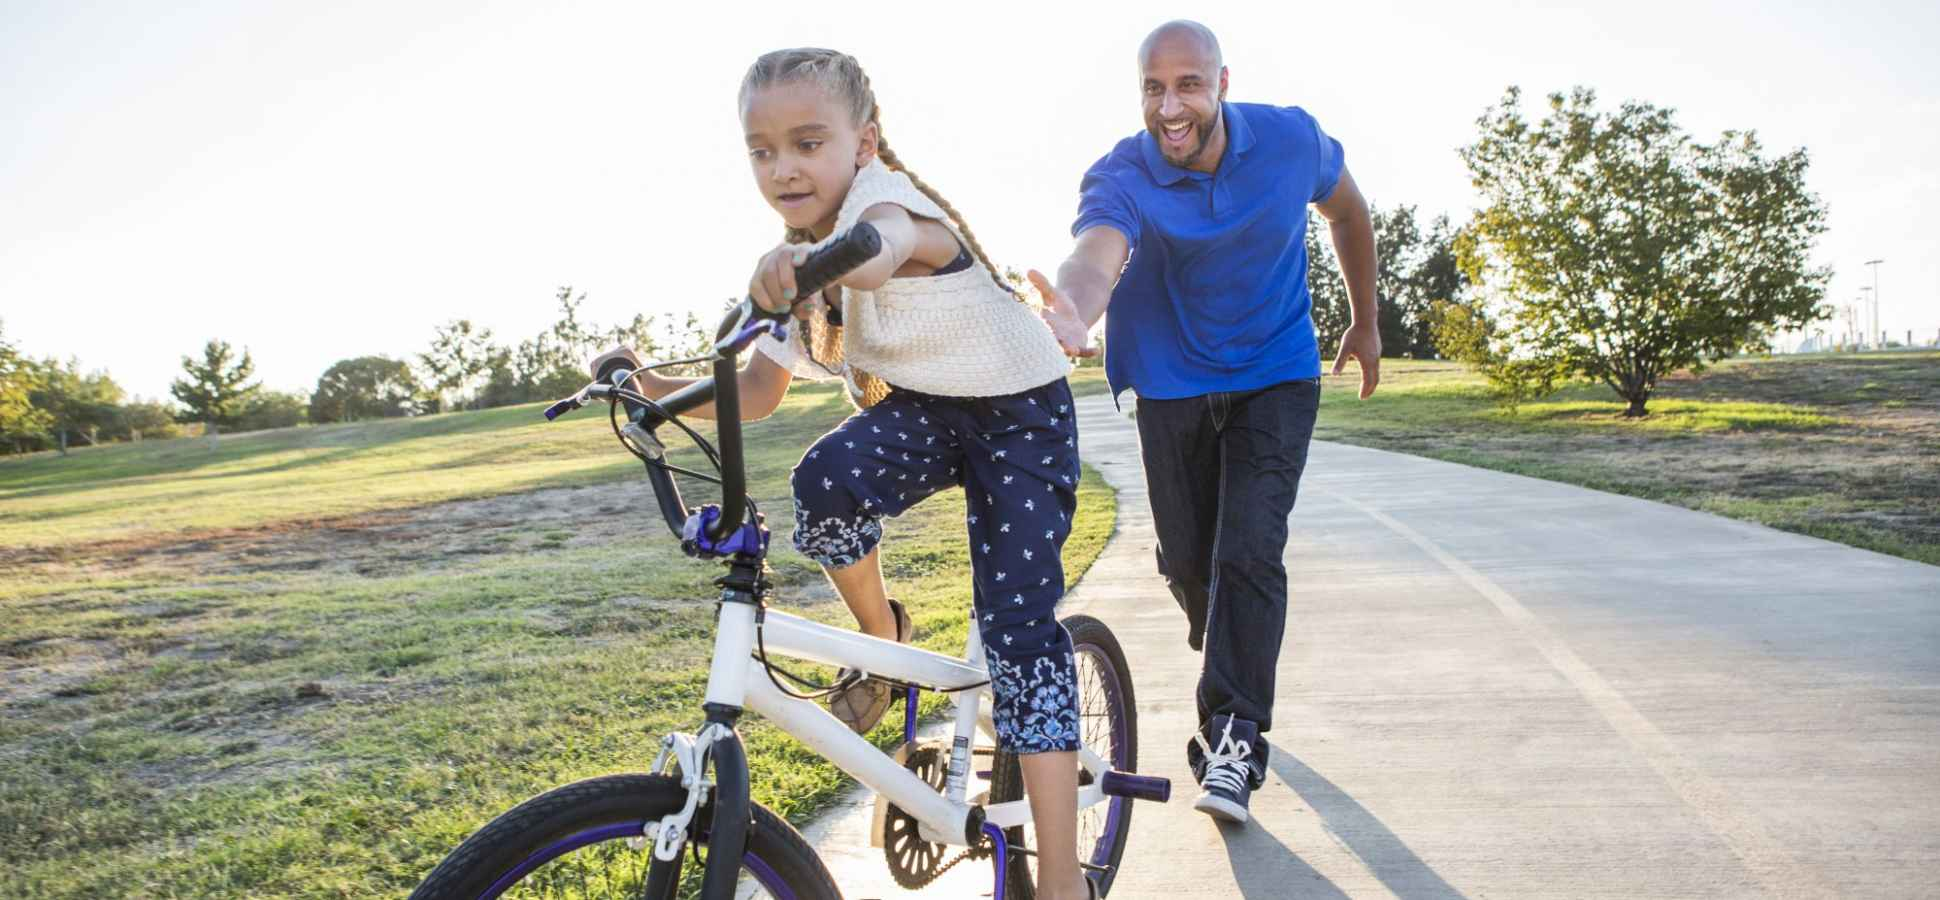 7 Reasons It's Tough to Be a Mentally Strong Parent (and How You Can Build Your Mental Muscles)